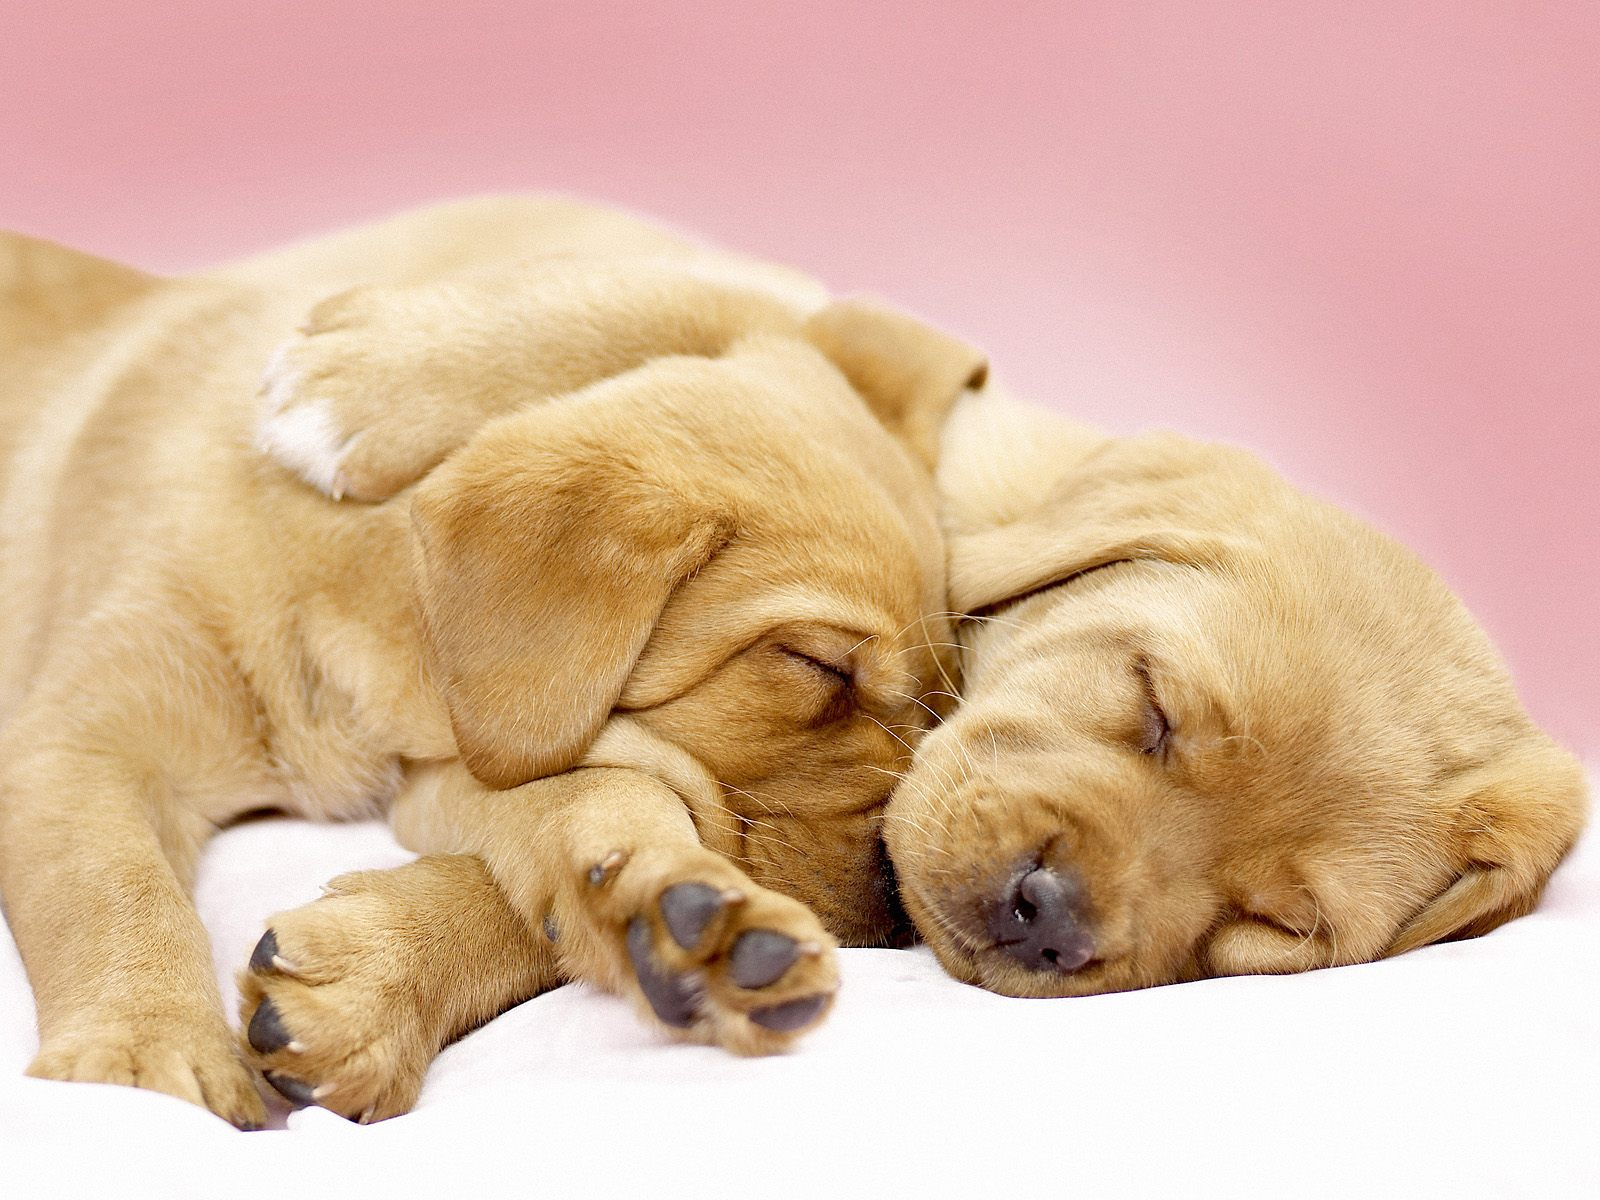 Sleep Together Dog Wallpapers Backgrounds Dogs 1600x1200